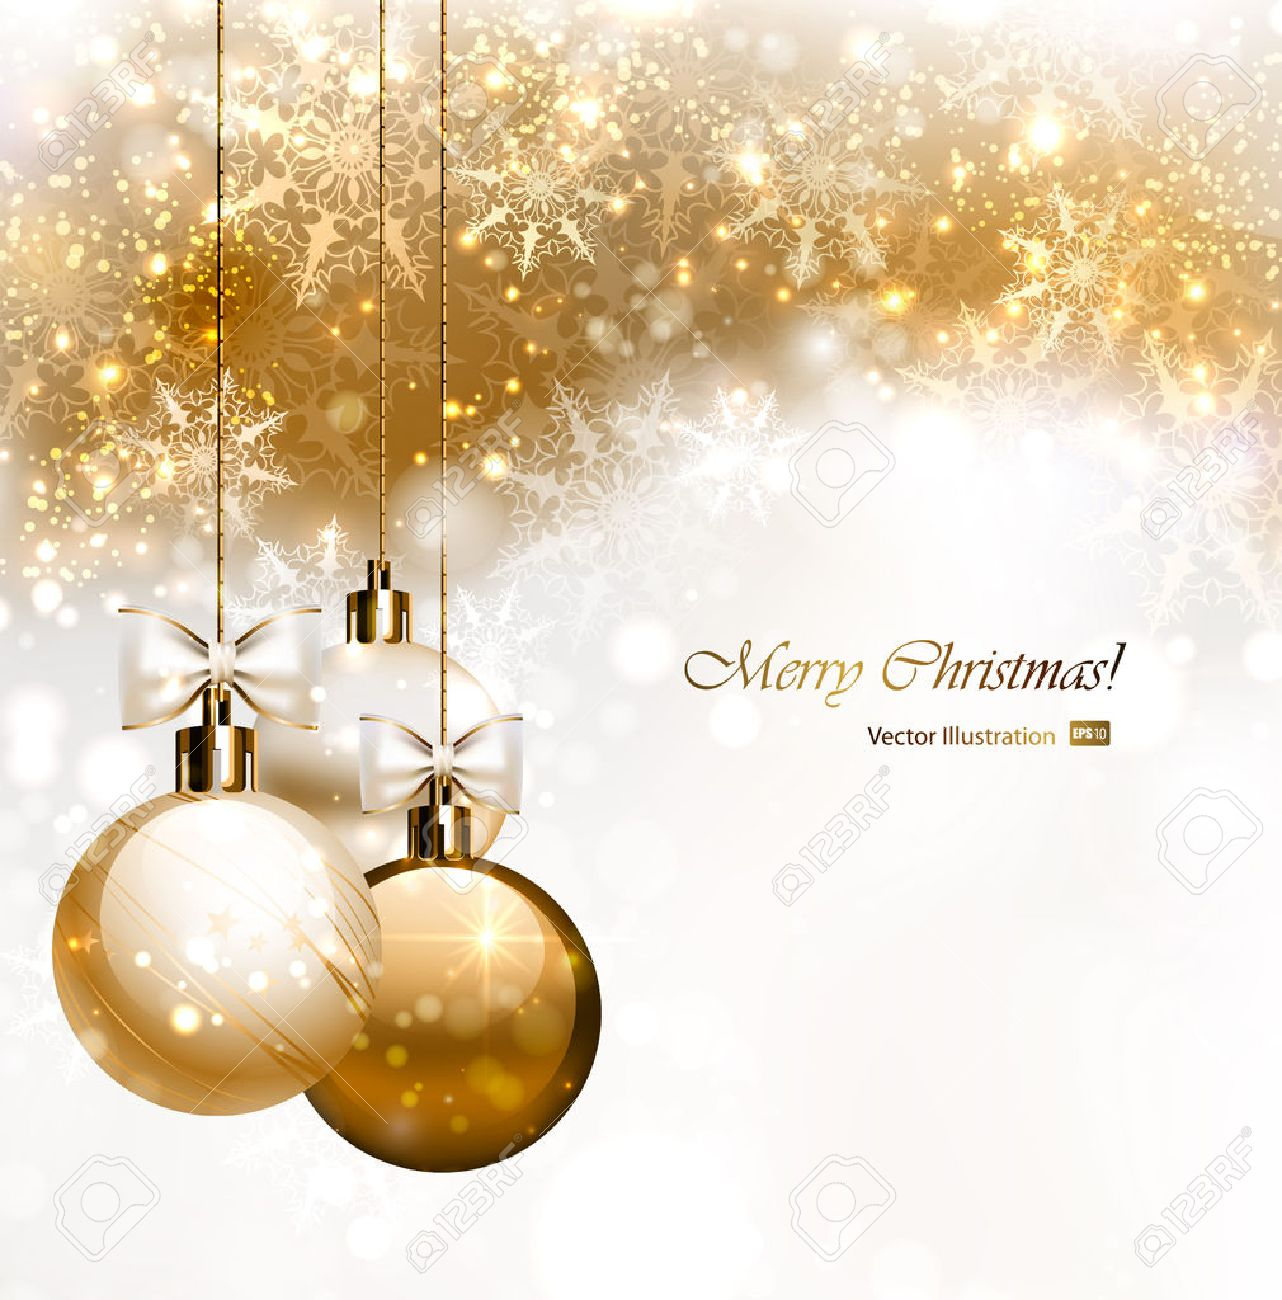 Christmas background with three Christmas baubles - 25497928